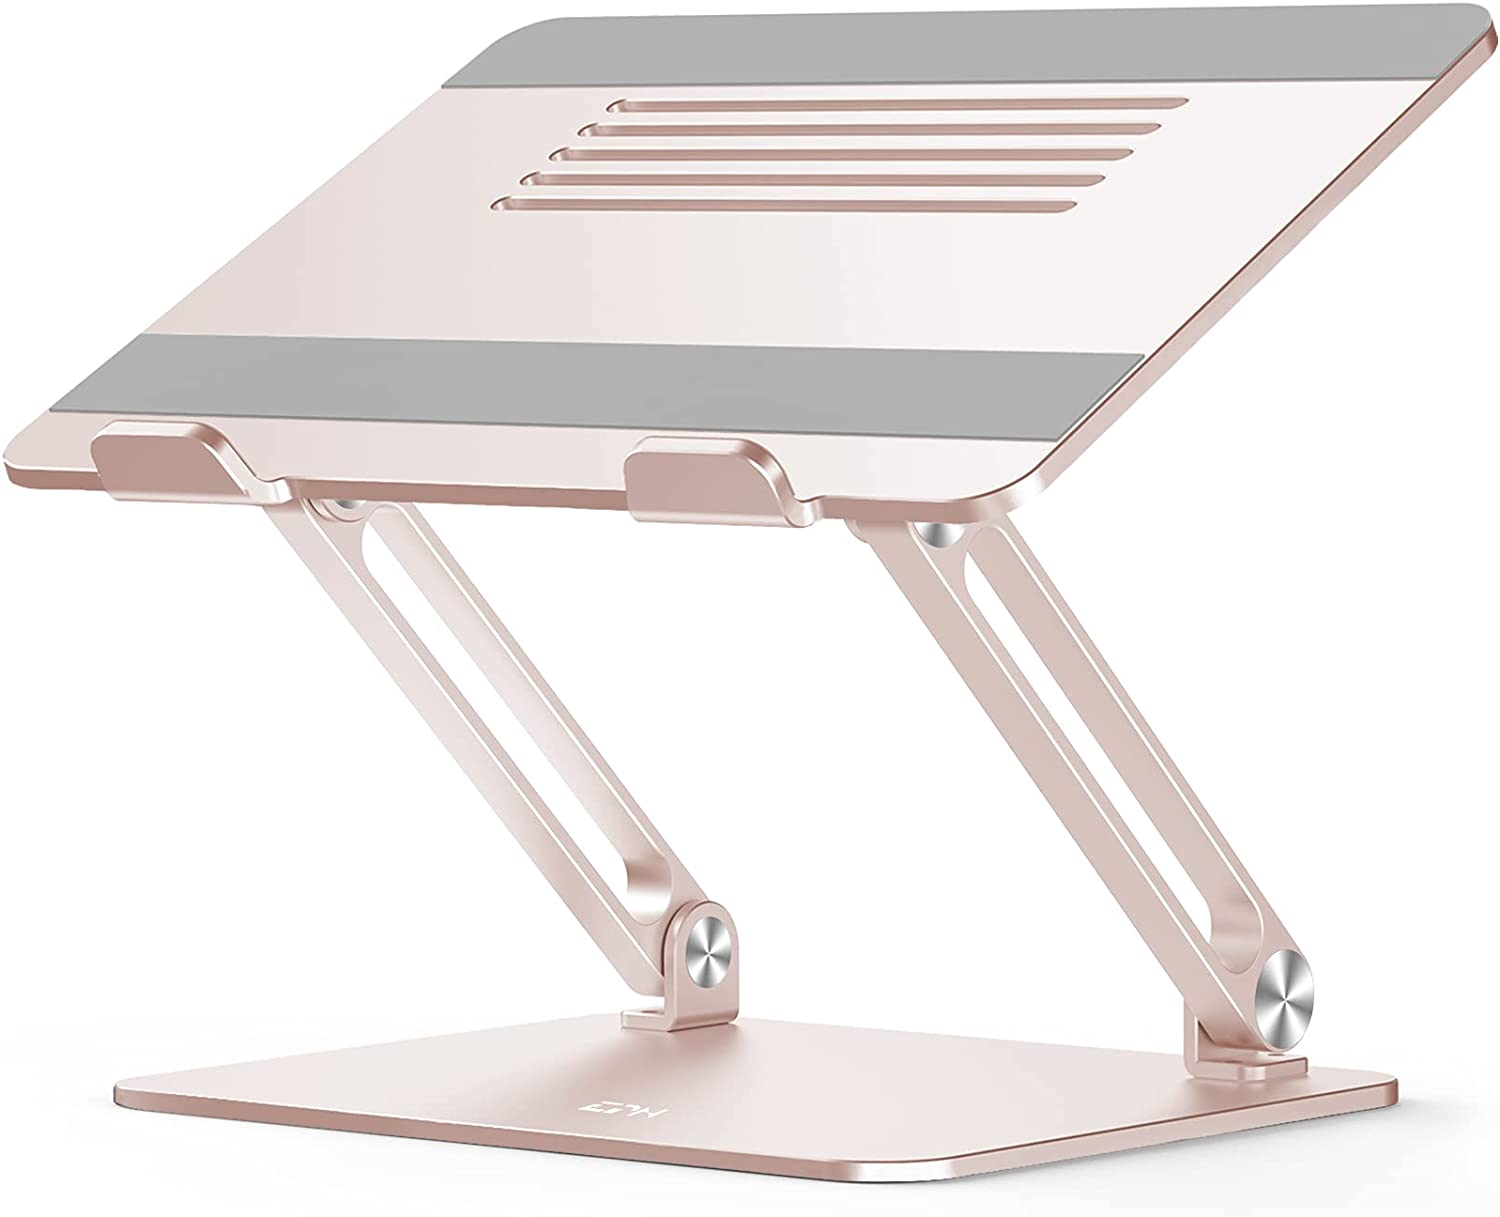 Laptop Stand, EPN Ergonomic Portable Laptop Riser Adjustable Height Laptop Holder with Non-Slip Silicone, Aluminium Alloy Compatible for MacBook, Lenovo, and notebooks up to 17 Inch-Champagne Gold